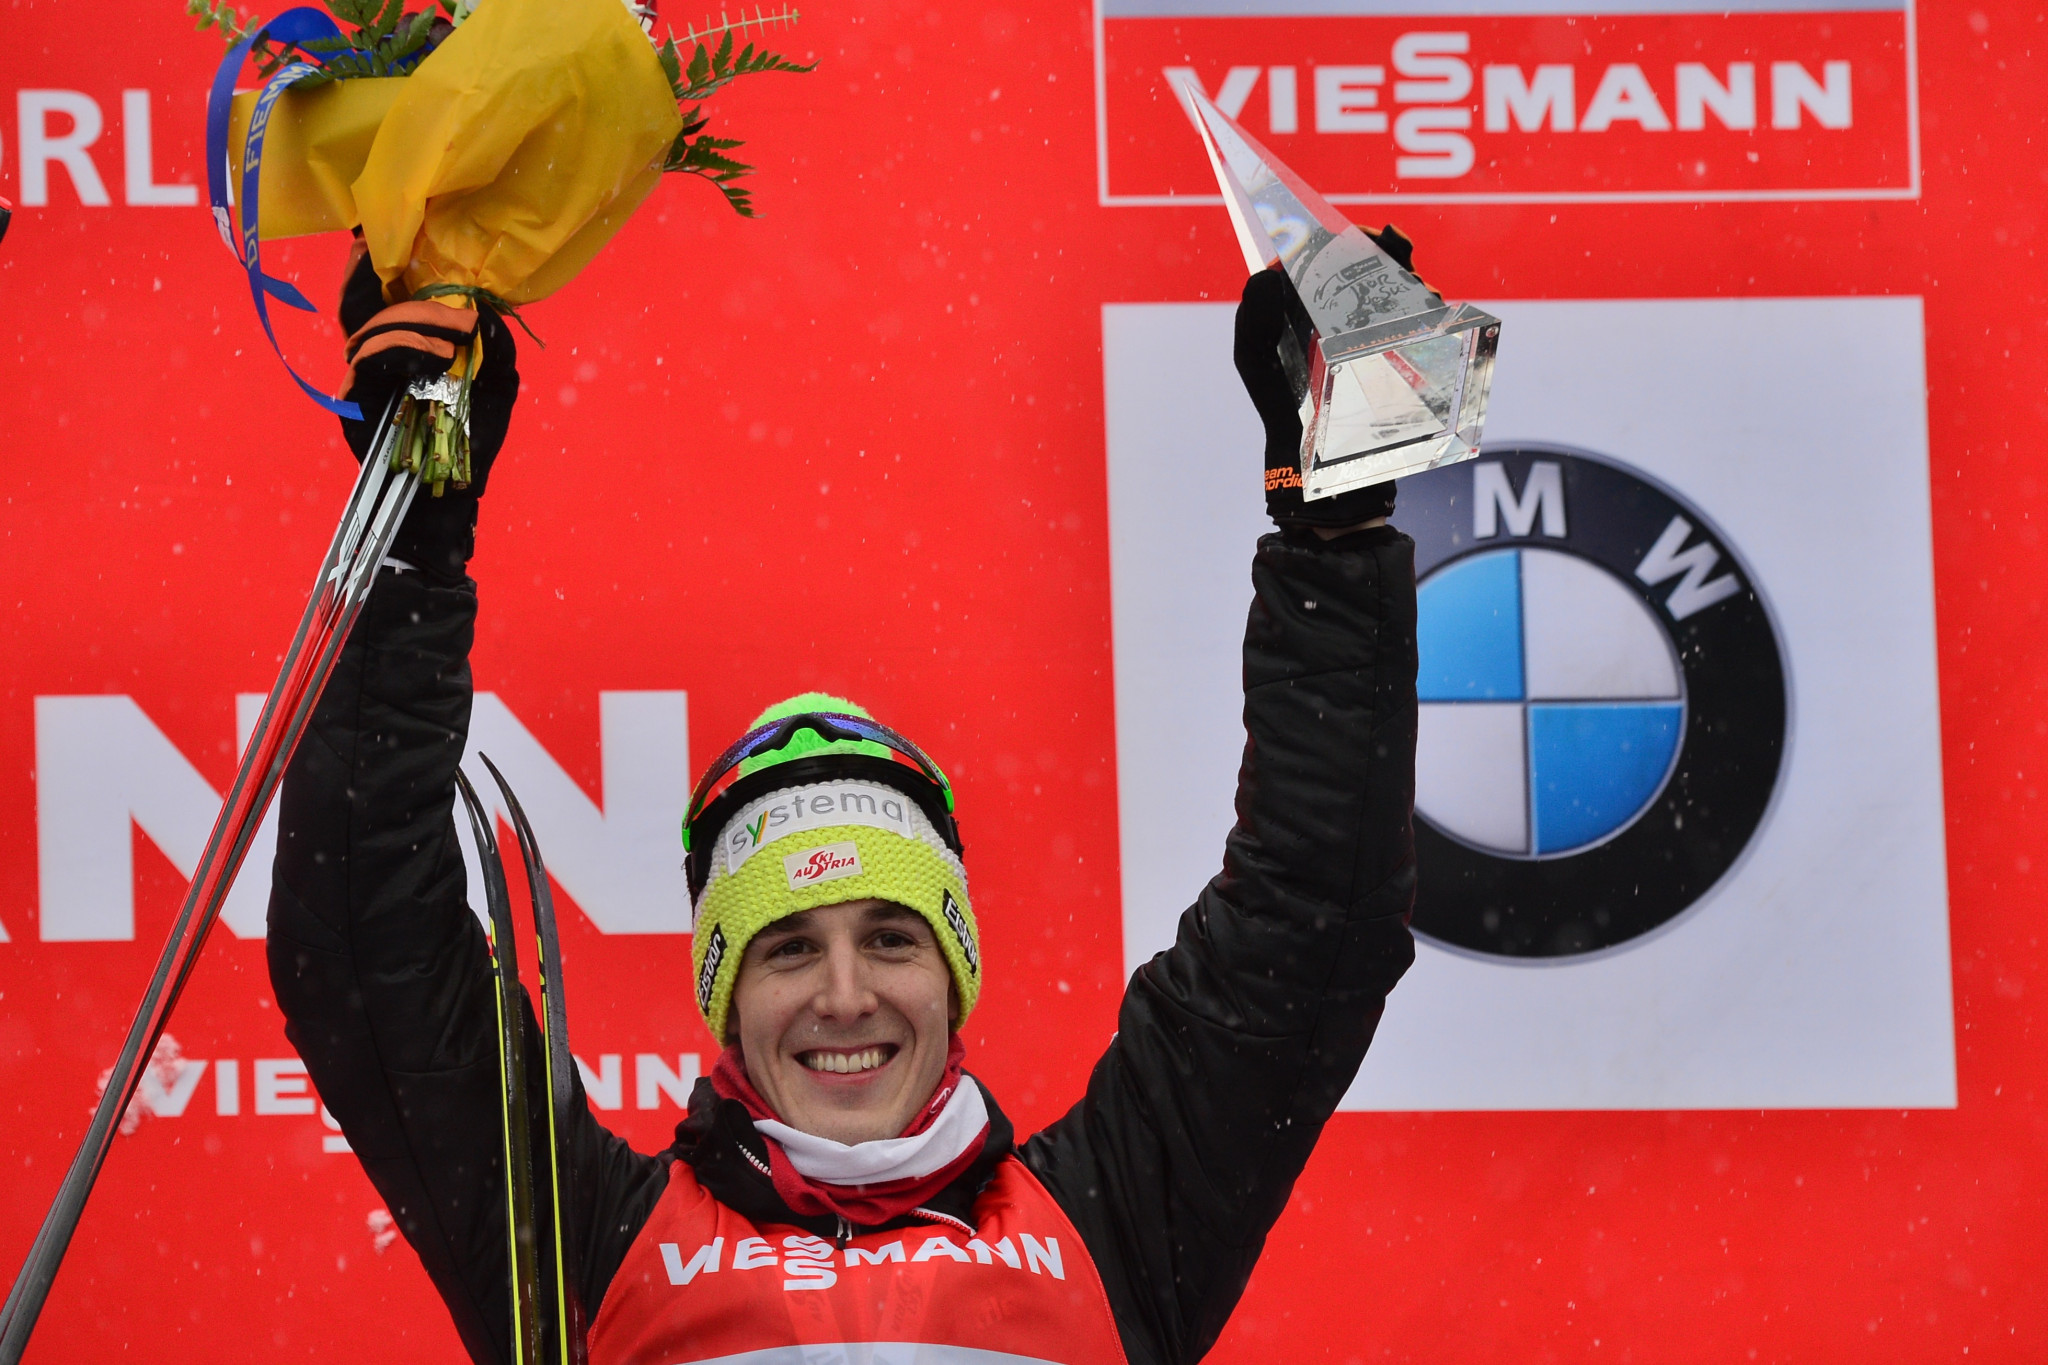 Revelations from Austrian cross-country skier Johannes Dürr on German television prompted the raid at the World Nordic Skiing Championships - leading to his arrest too ©Getty Images